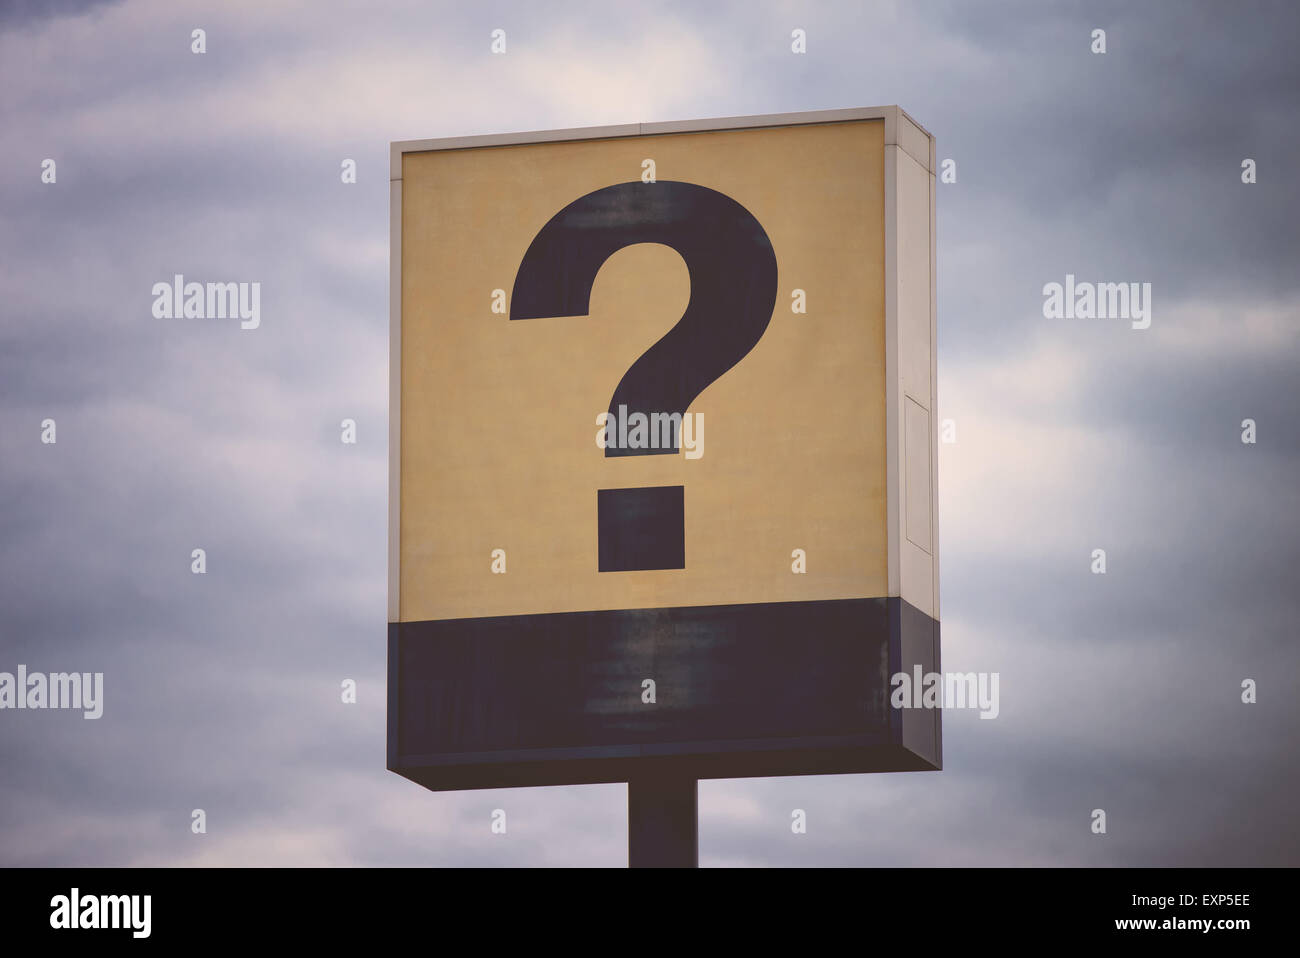 Question Mark on Vintage Sign, Retro Toned Cross Process Image - Stock Image